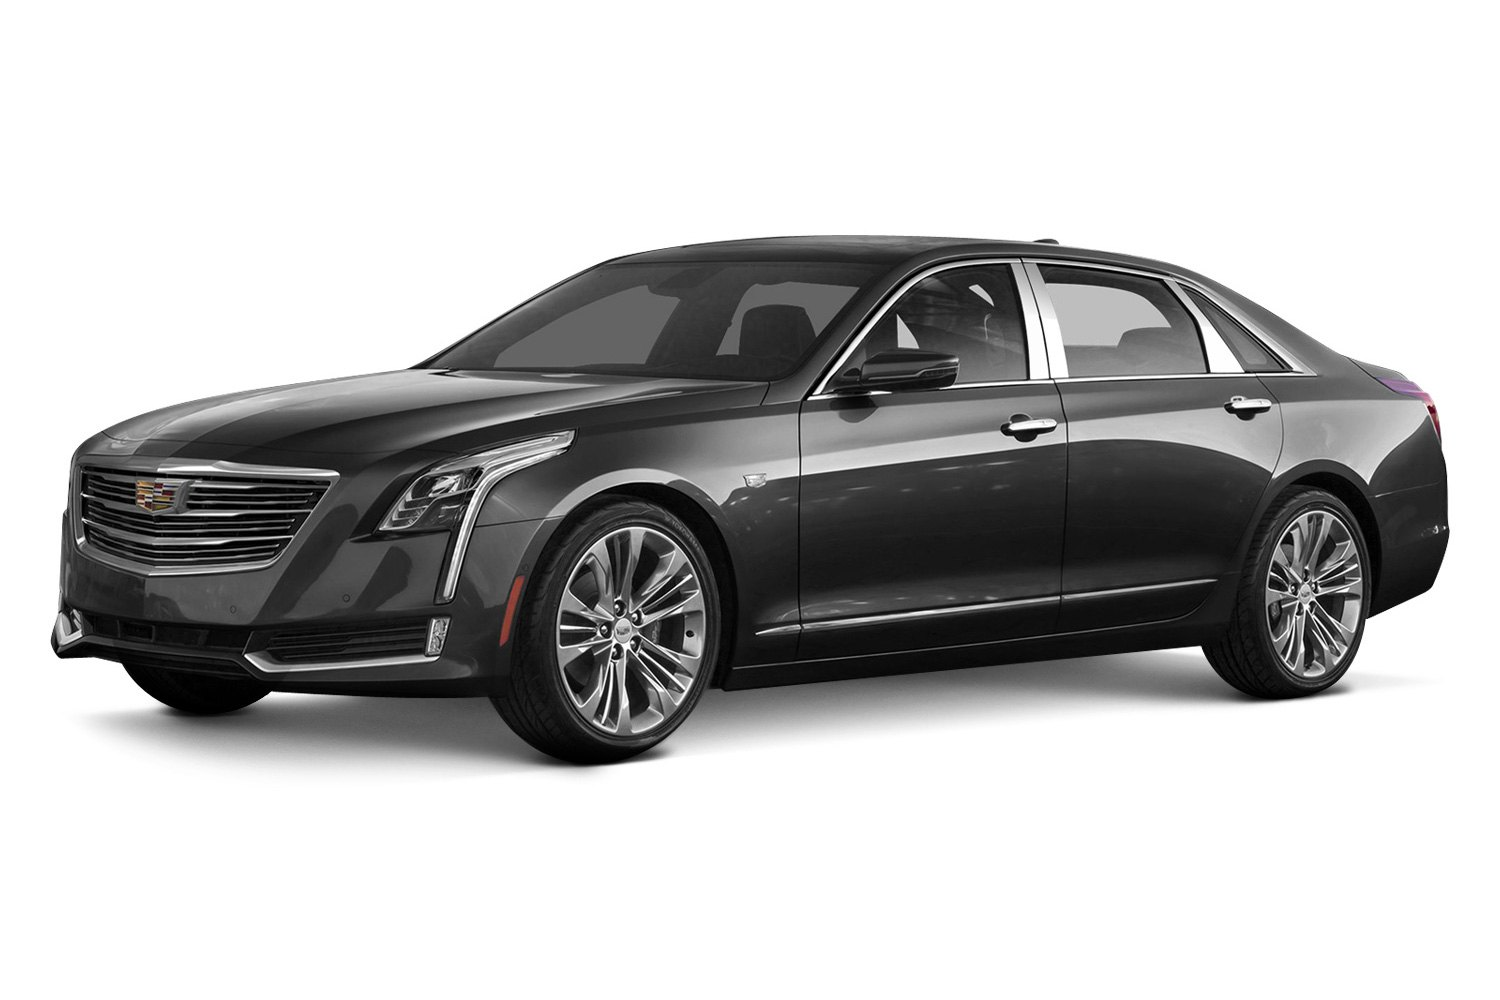 saa cadillac xts 2013 2015 o type polished rocker panel. Black Bedroom Furniture Sets. Home Design Ideas